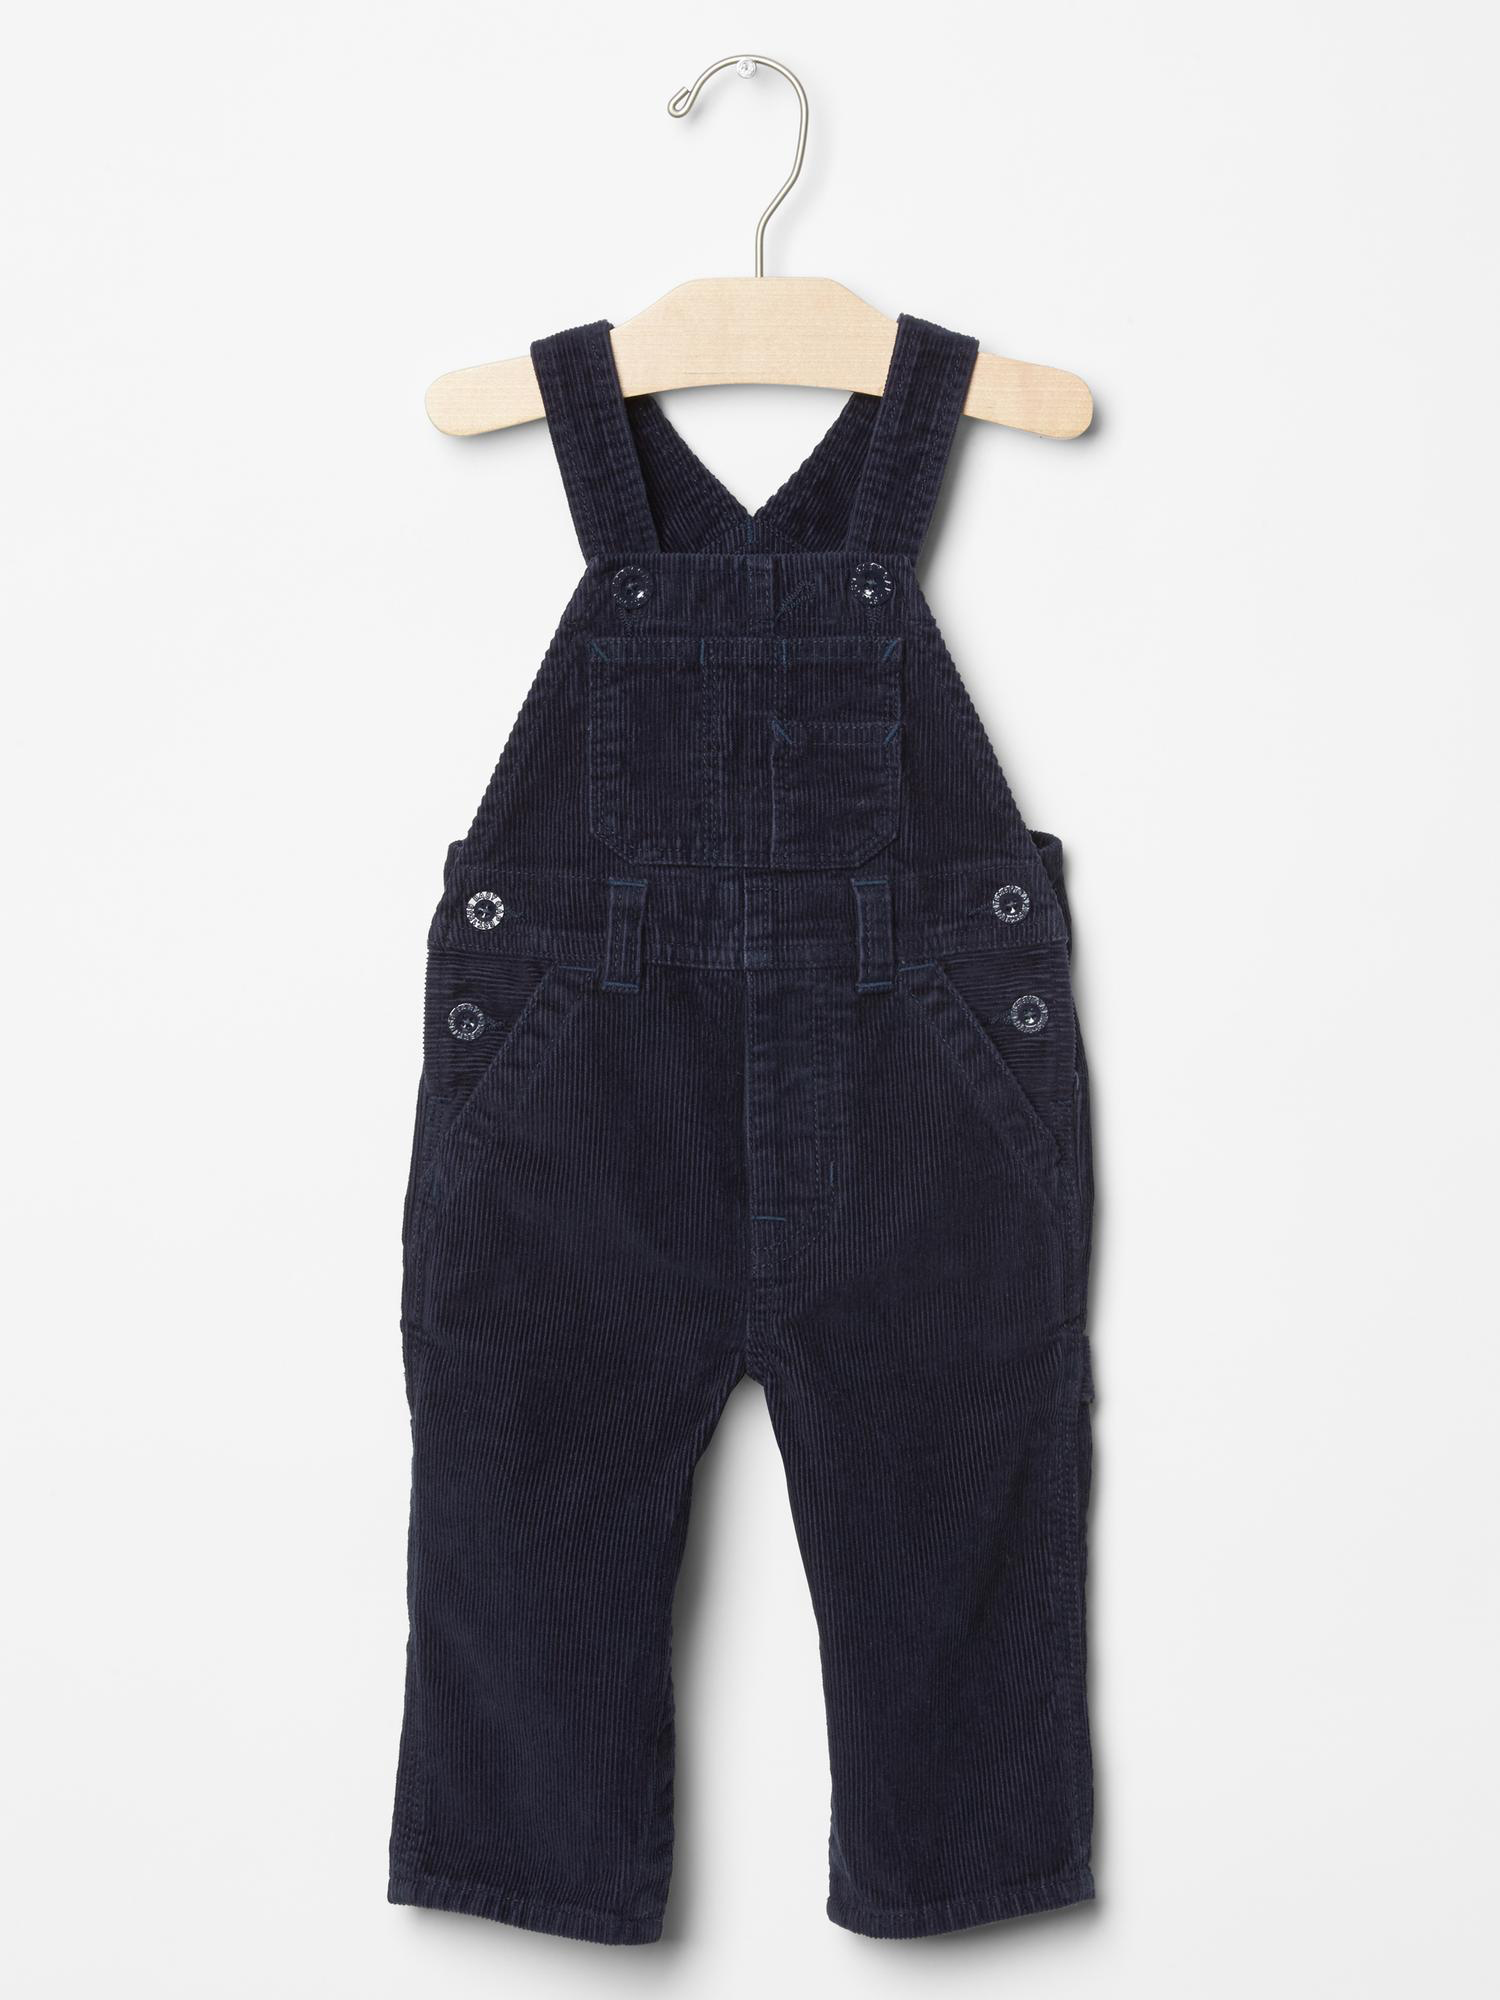 Corduroy Overalls from Baby Gap